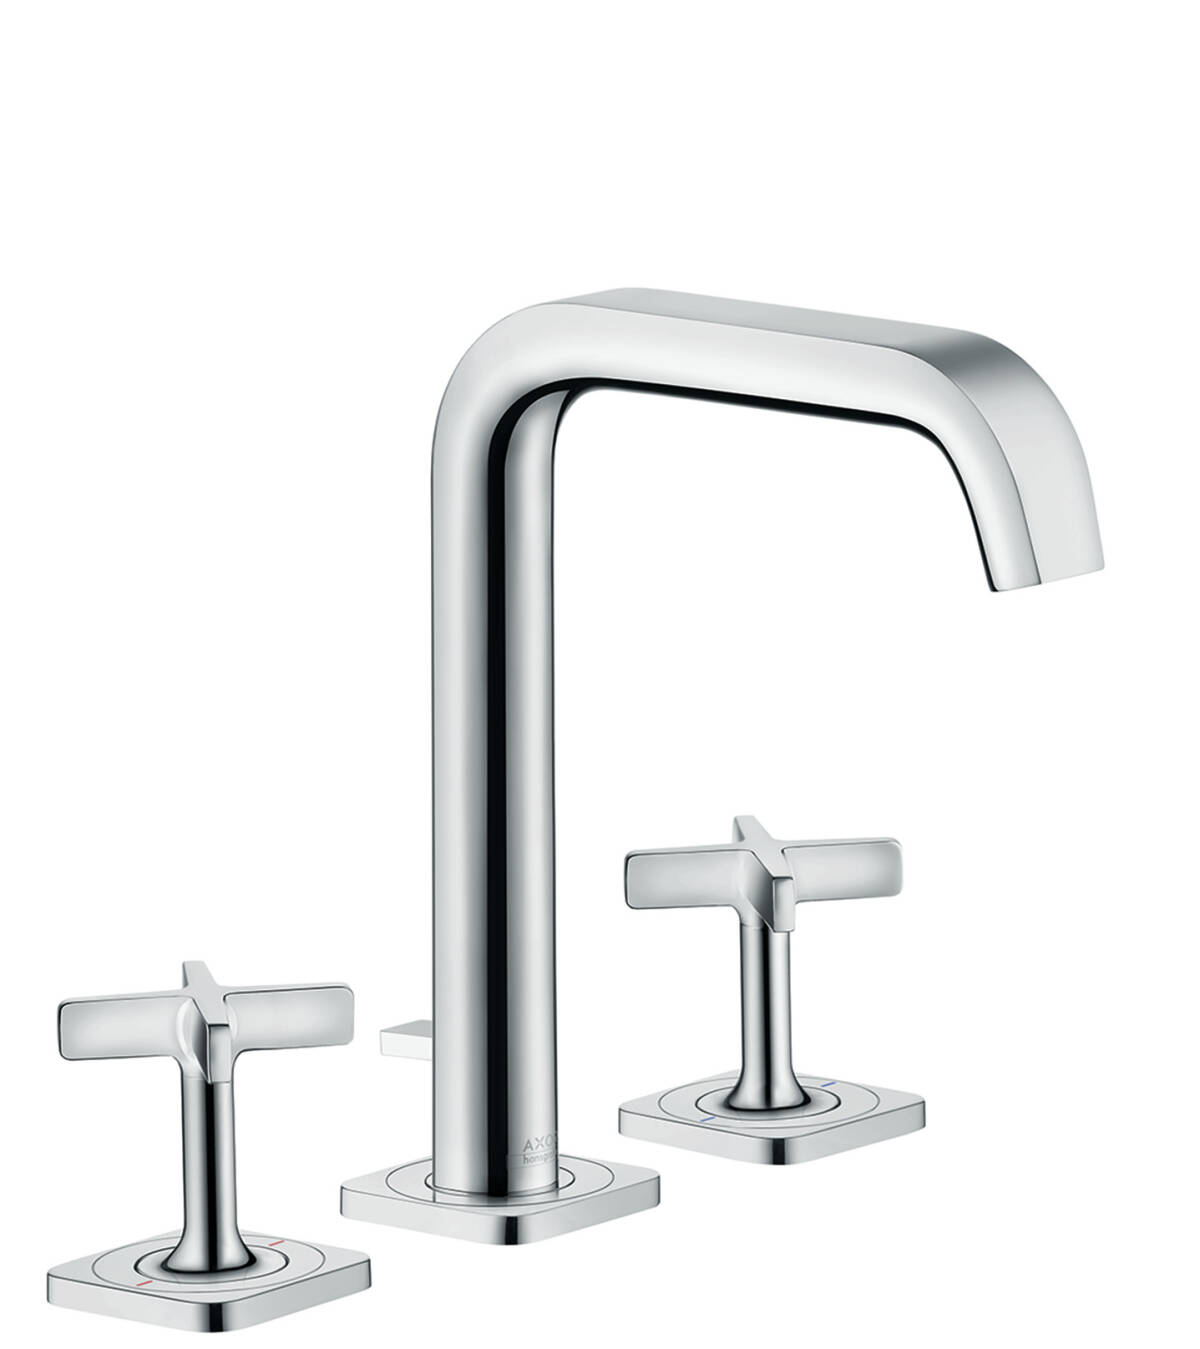 3-hole basin mixer 170 with escutcheons and pop-up waste set, Chrome, 36108000